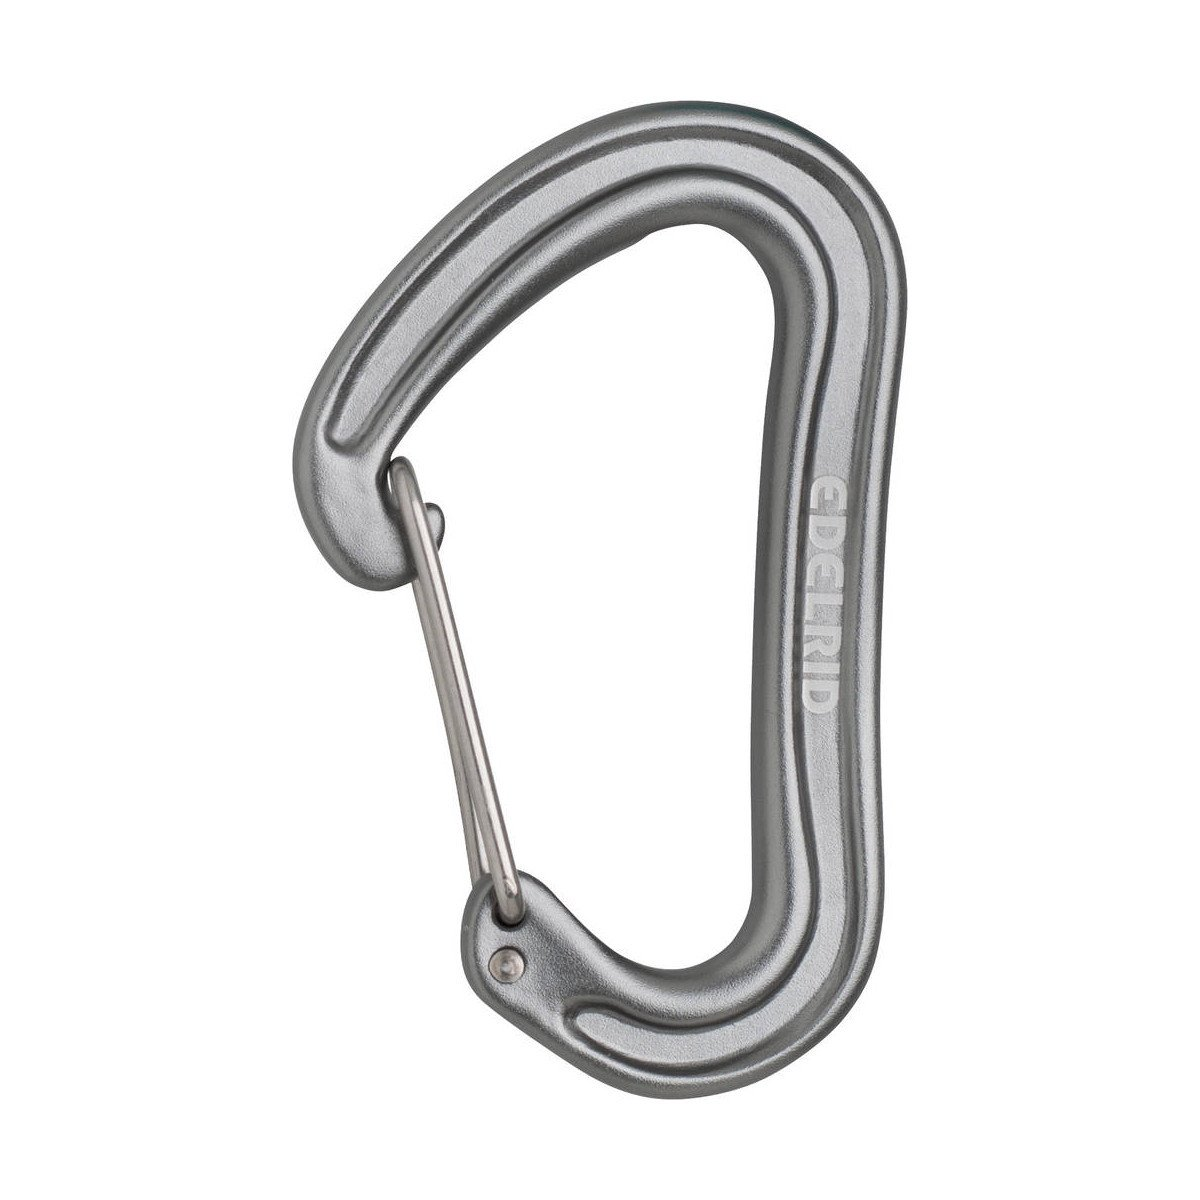 Edelrid Nineteen G wire gate carabiner in silver colour